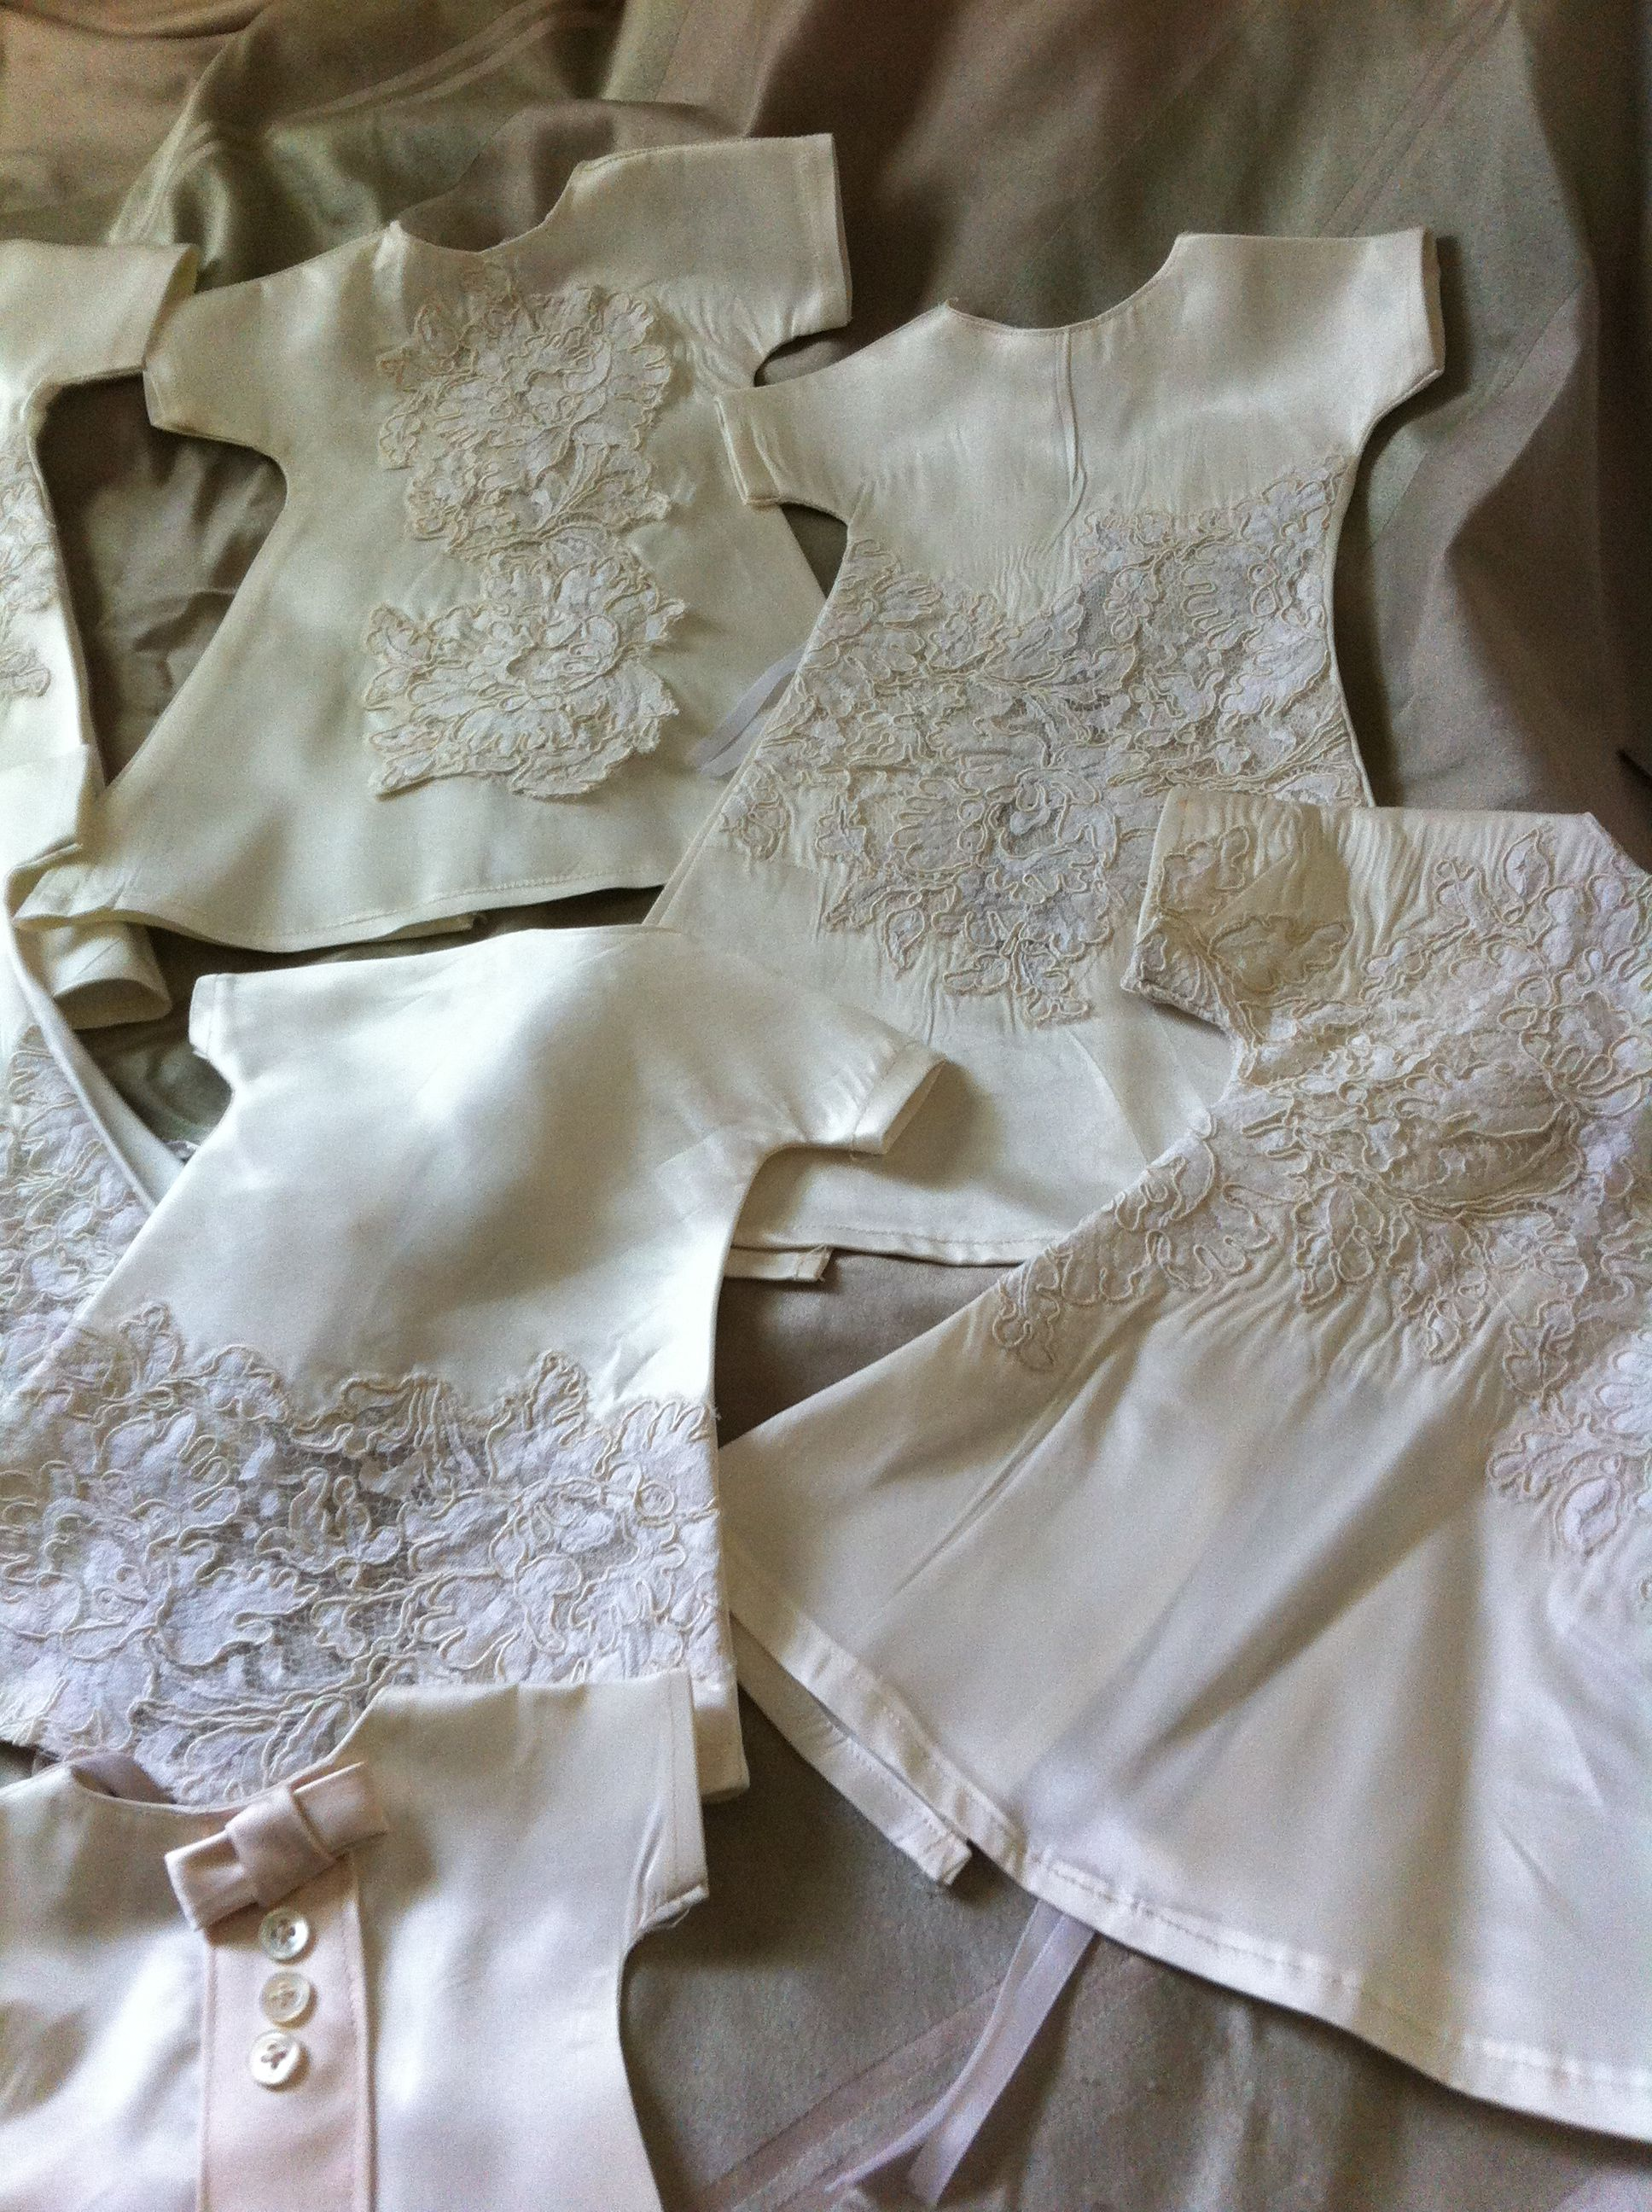 Luxury Nicu Helping Hands Angel Gowns Photo - Wedding and flowers ...